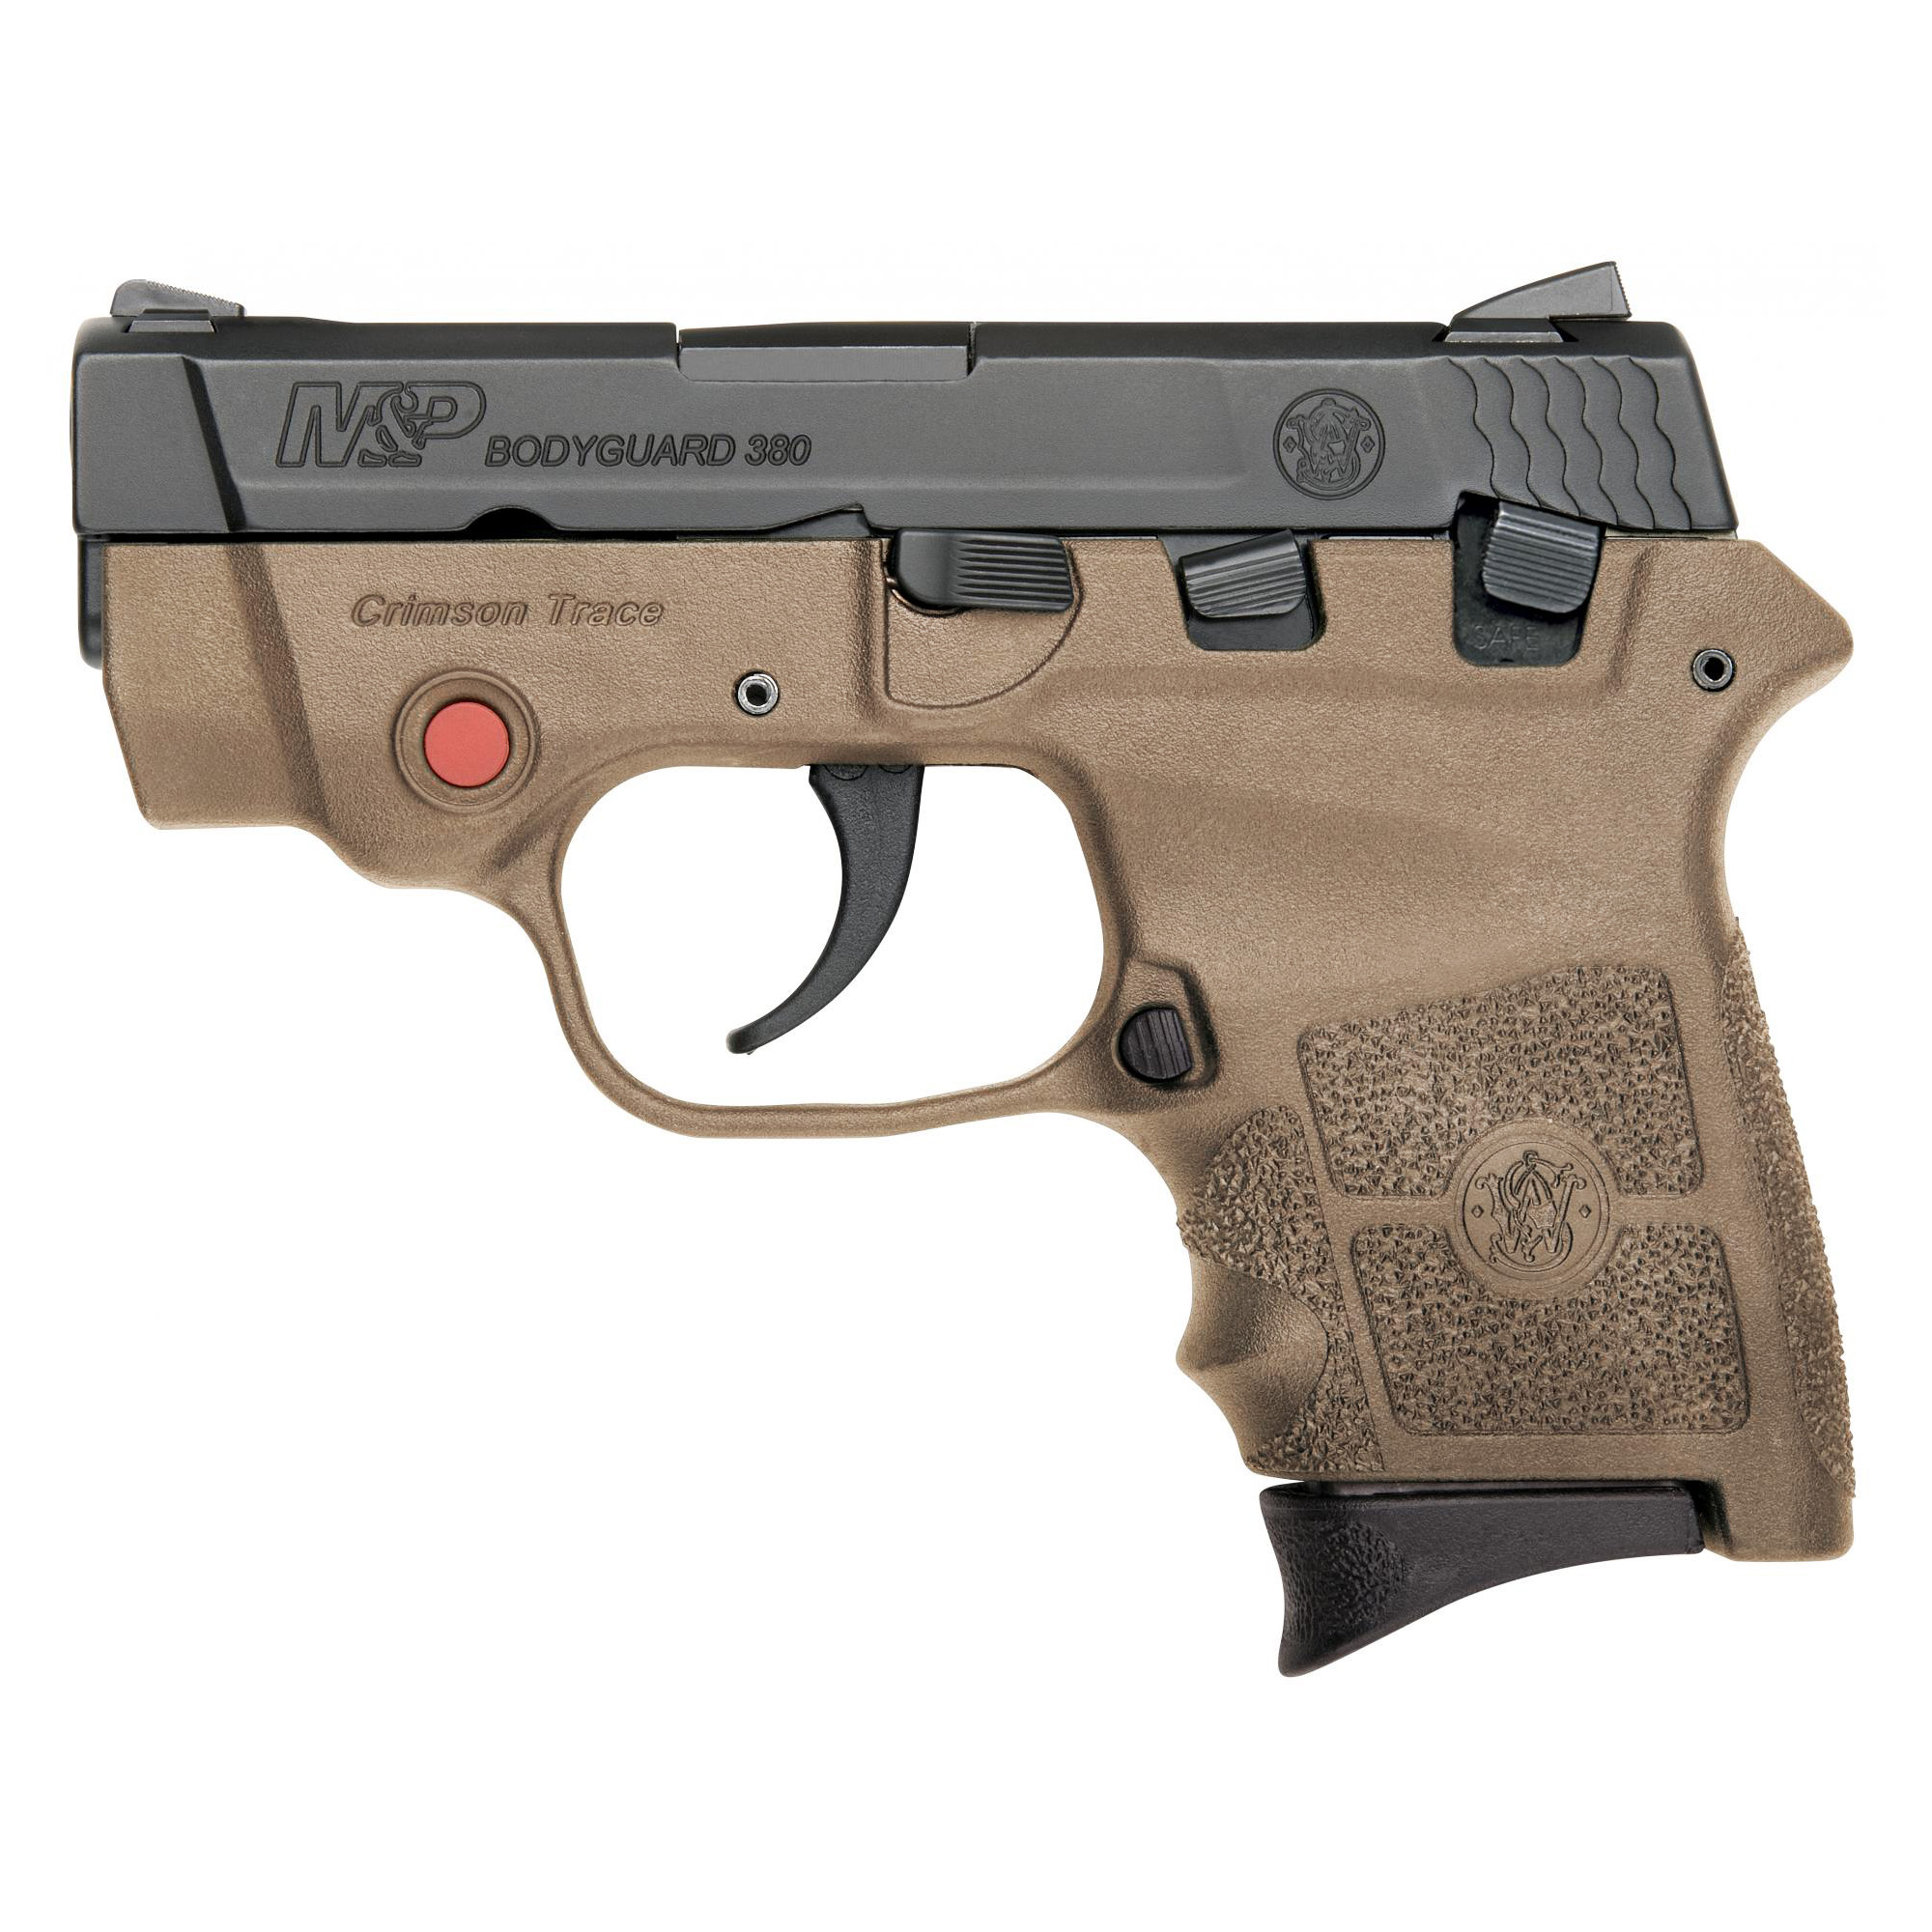 "Compact and sleek"" the M&P BODYGUARD 380 delivers personal protection in an easy-to-carry"" comfortable platform. Chambered for .380 ACP"" the lightweight pistol features a high-strength polymer frame with a black"" matte-coated stainless-steel slide and barrel. The new M&P BODYGUARD 380 retains original design features including a 2 3/4-inch barrel"" which contributes to an overall length of 5 1/4 inches and an unloaded weight of only 12.3 ounces making it perfectly suited for concealed carry. Lightweight"" and simple to use - nothing protects like a BODYGUARD. Includes two magazines"" one flat butt plate and one finger rest butt plate."